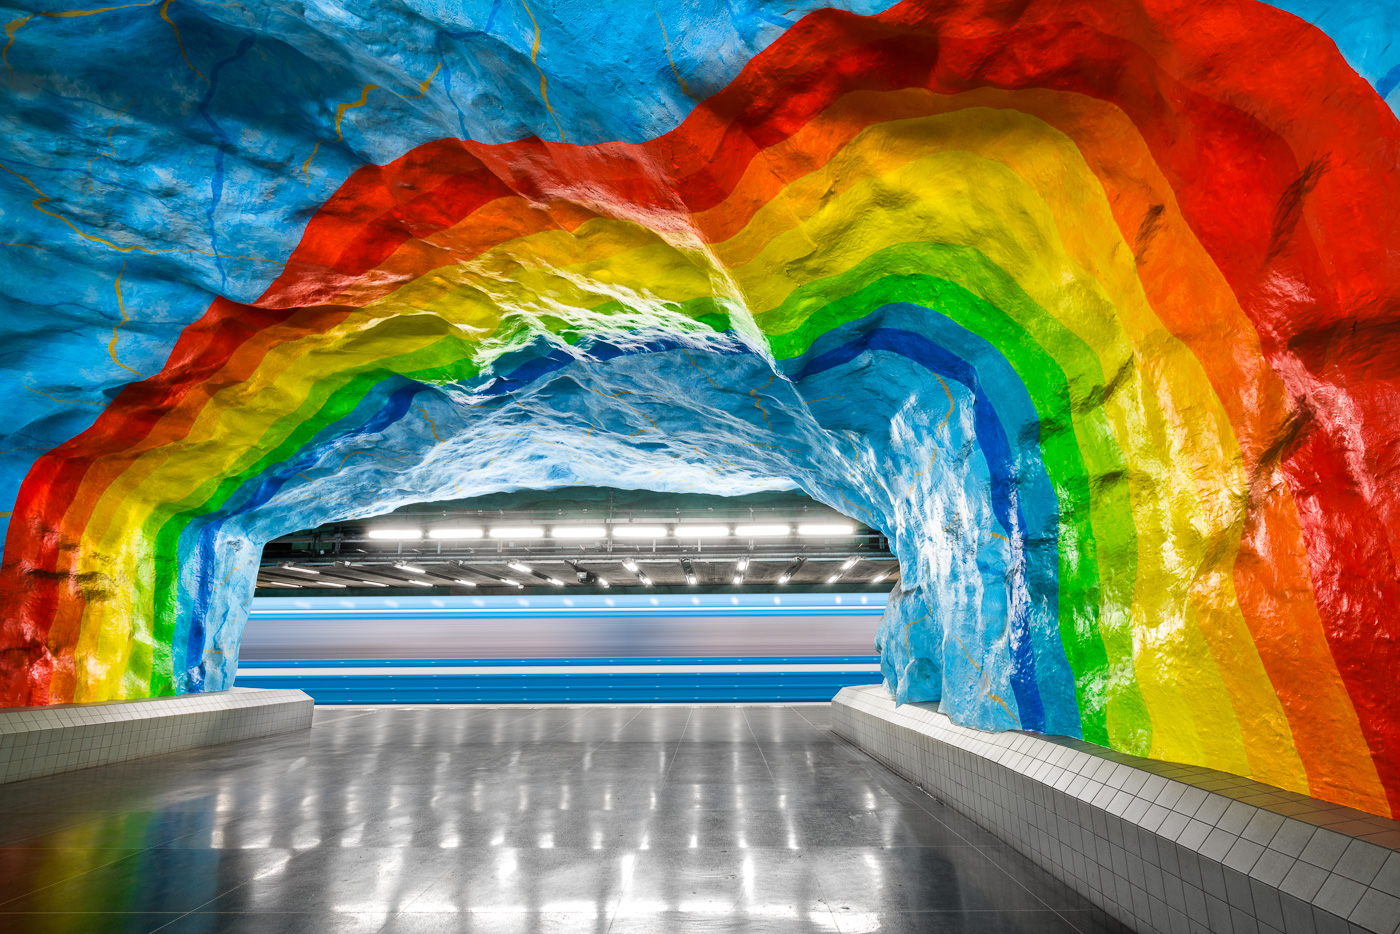 A photographer is documenting the most beautiful metro stations in the world - Lonely Planet Travel News. Article by James Gabriel Martin. Photographs by Chris M Forsyth